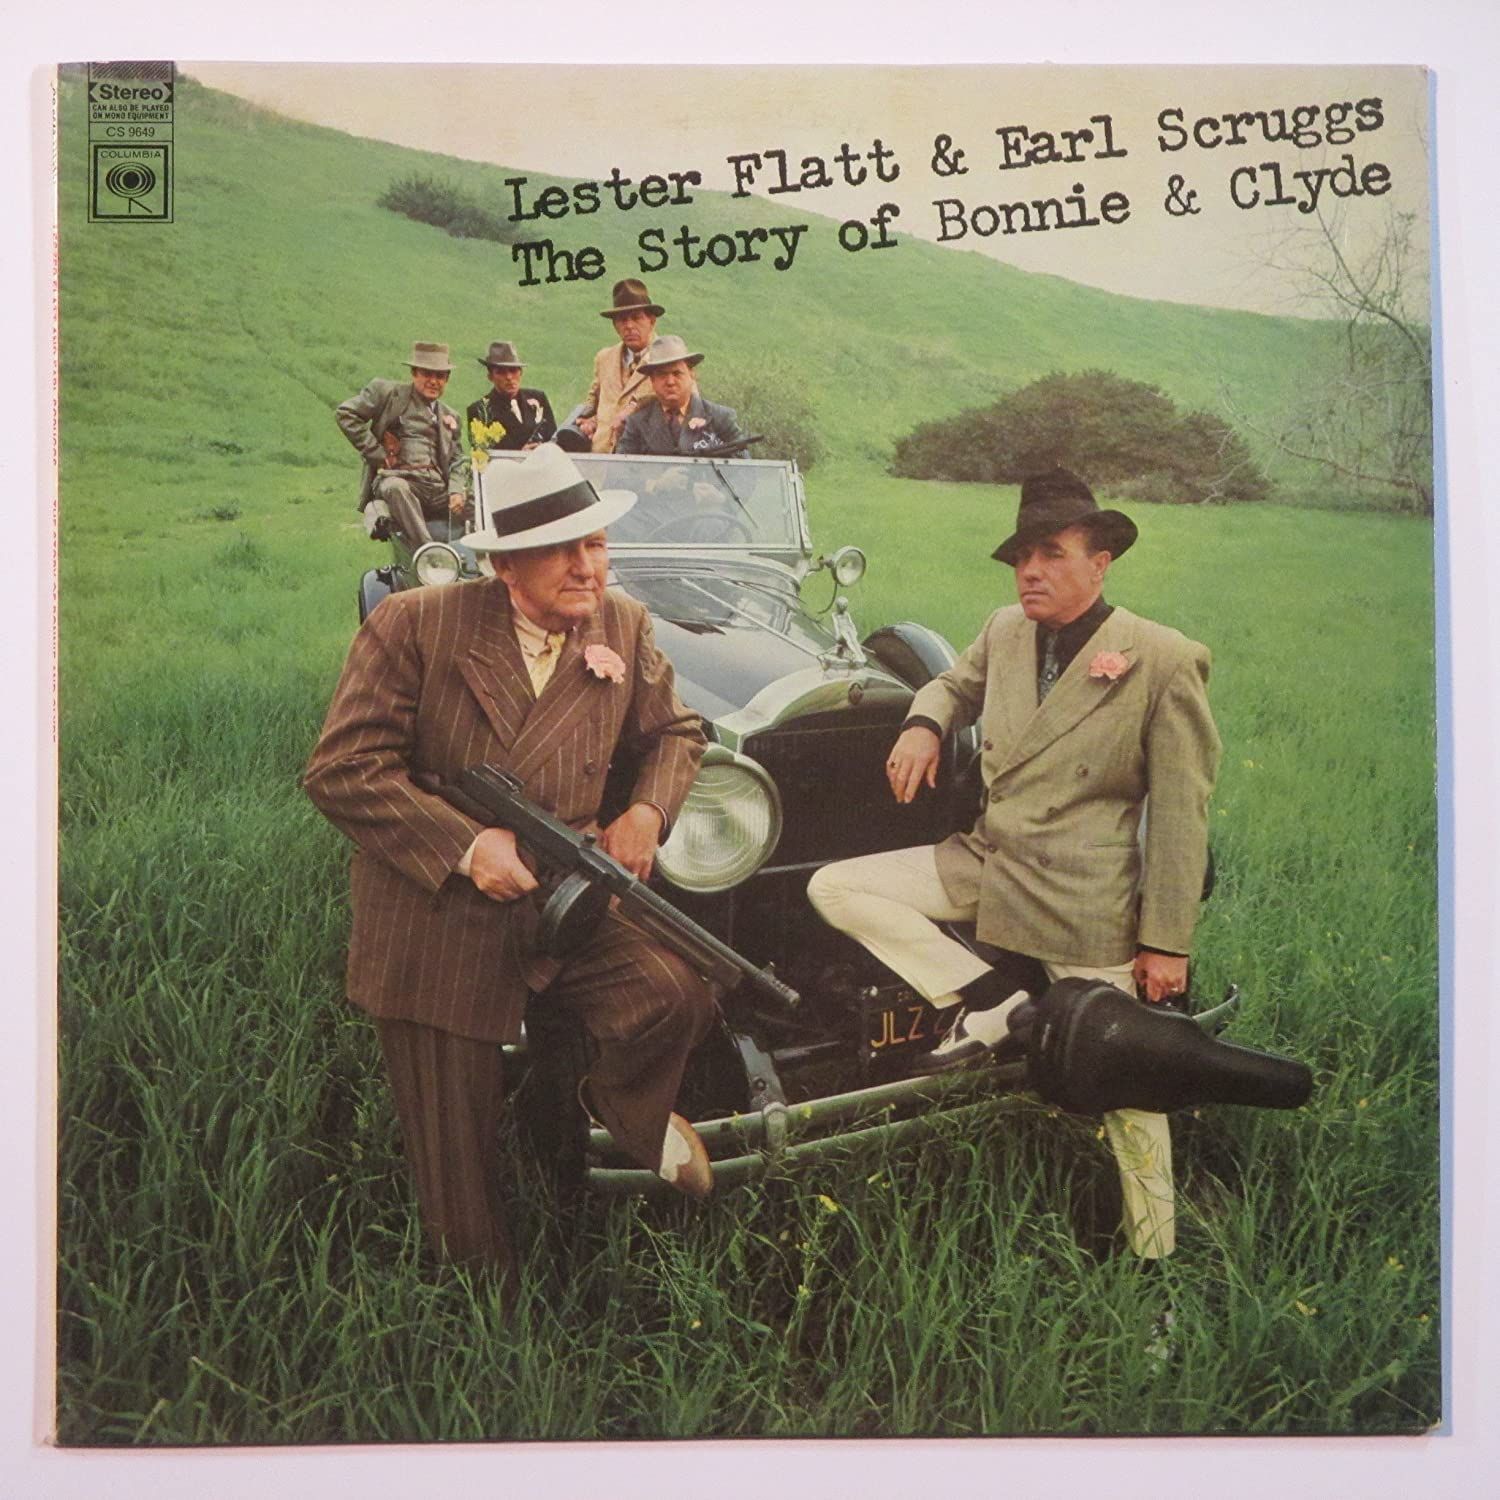 Lester Flatt and Earl Scruggs - The Story of Bonnie and